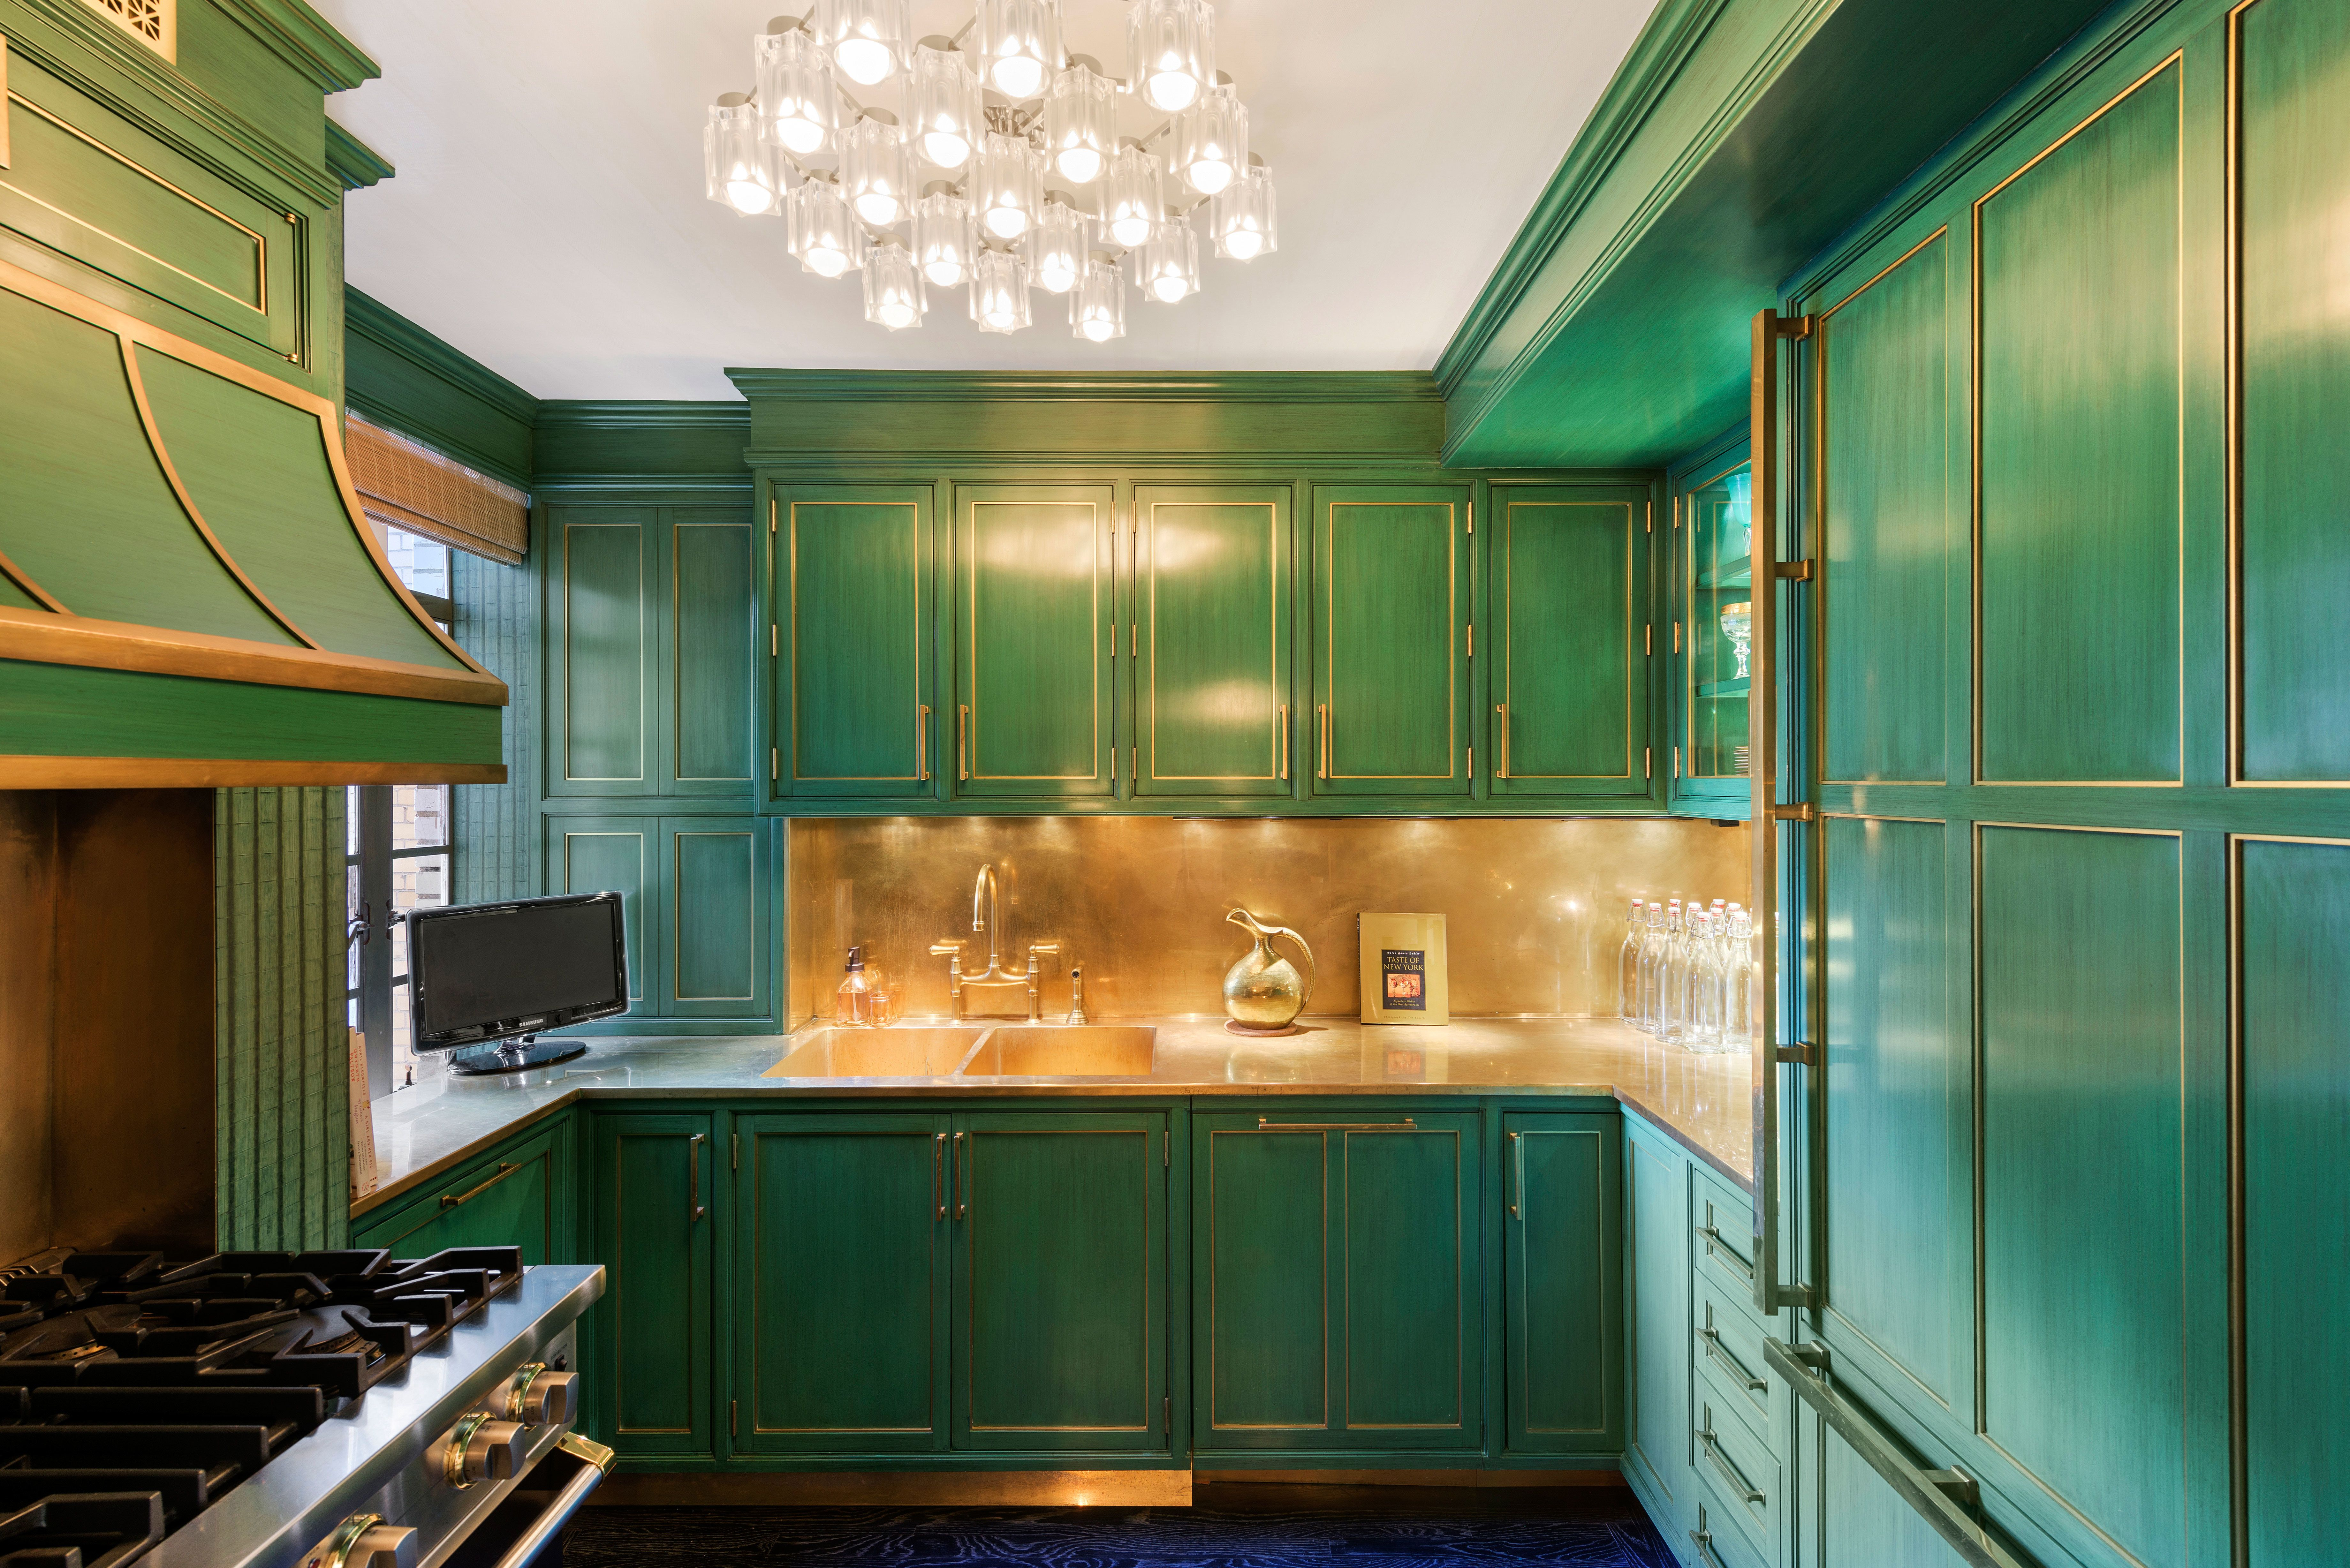 Gala At The Wythe Celebrates The World S First Water Filtering Floating Pool With Images Kitchen Cabinet Design Green Kitchen New York Apartment